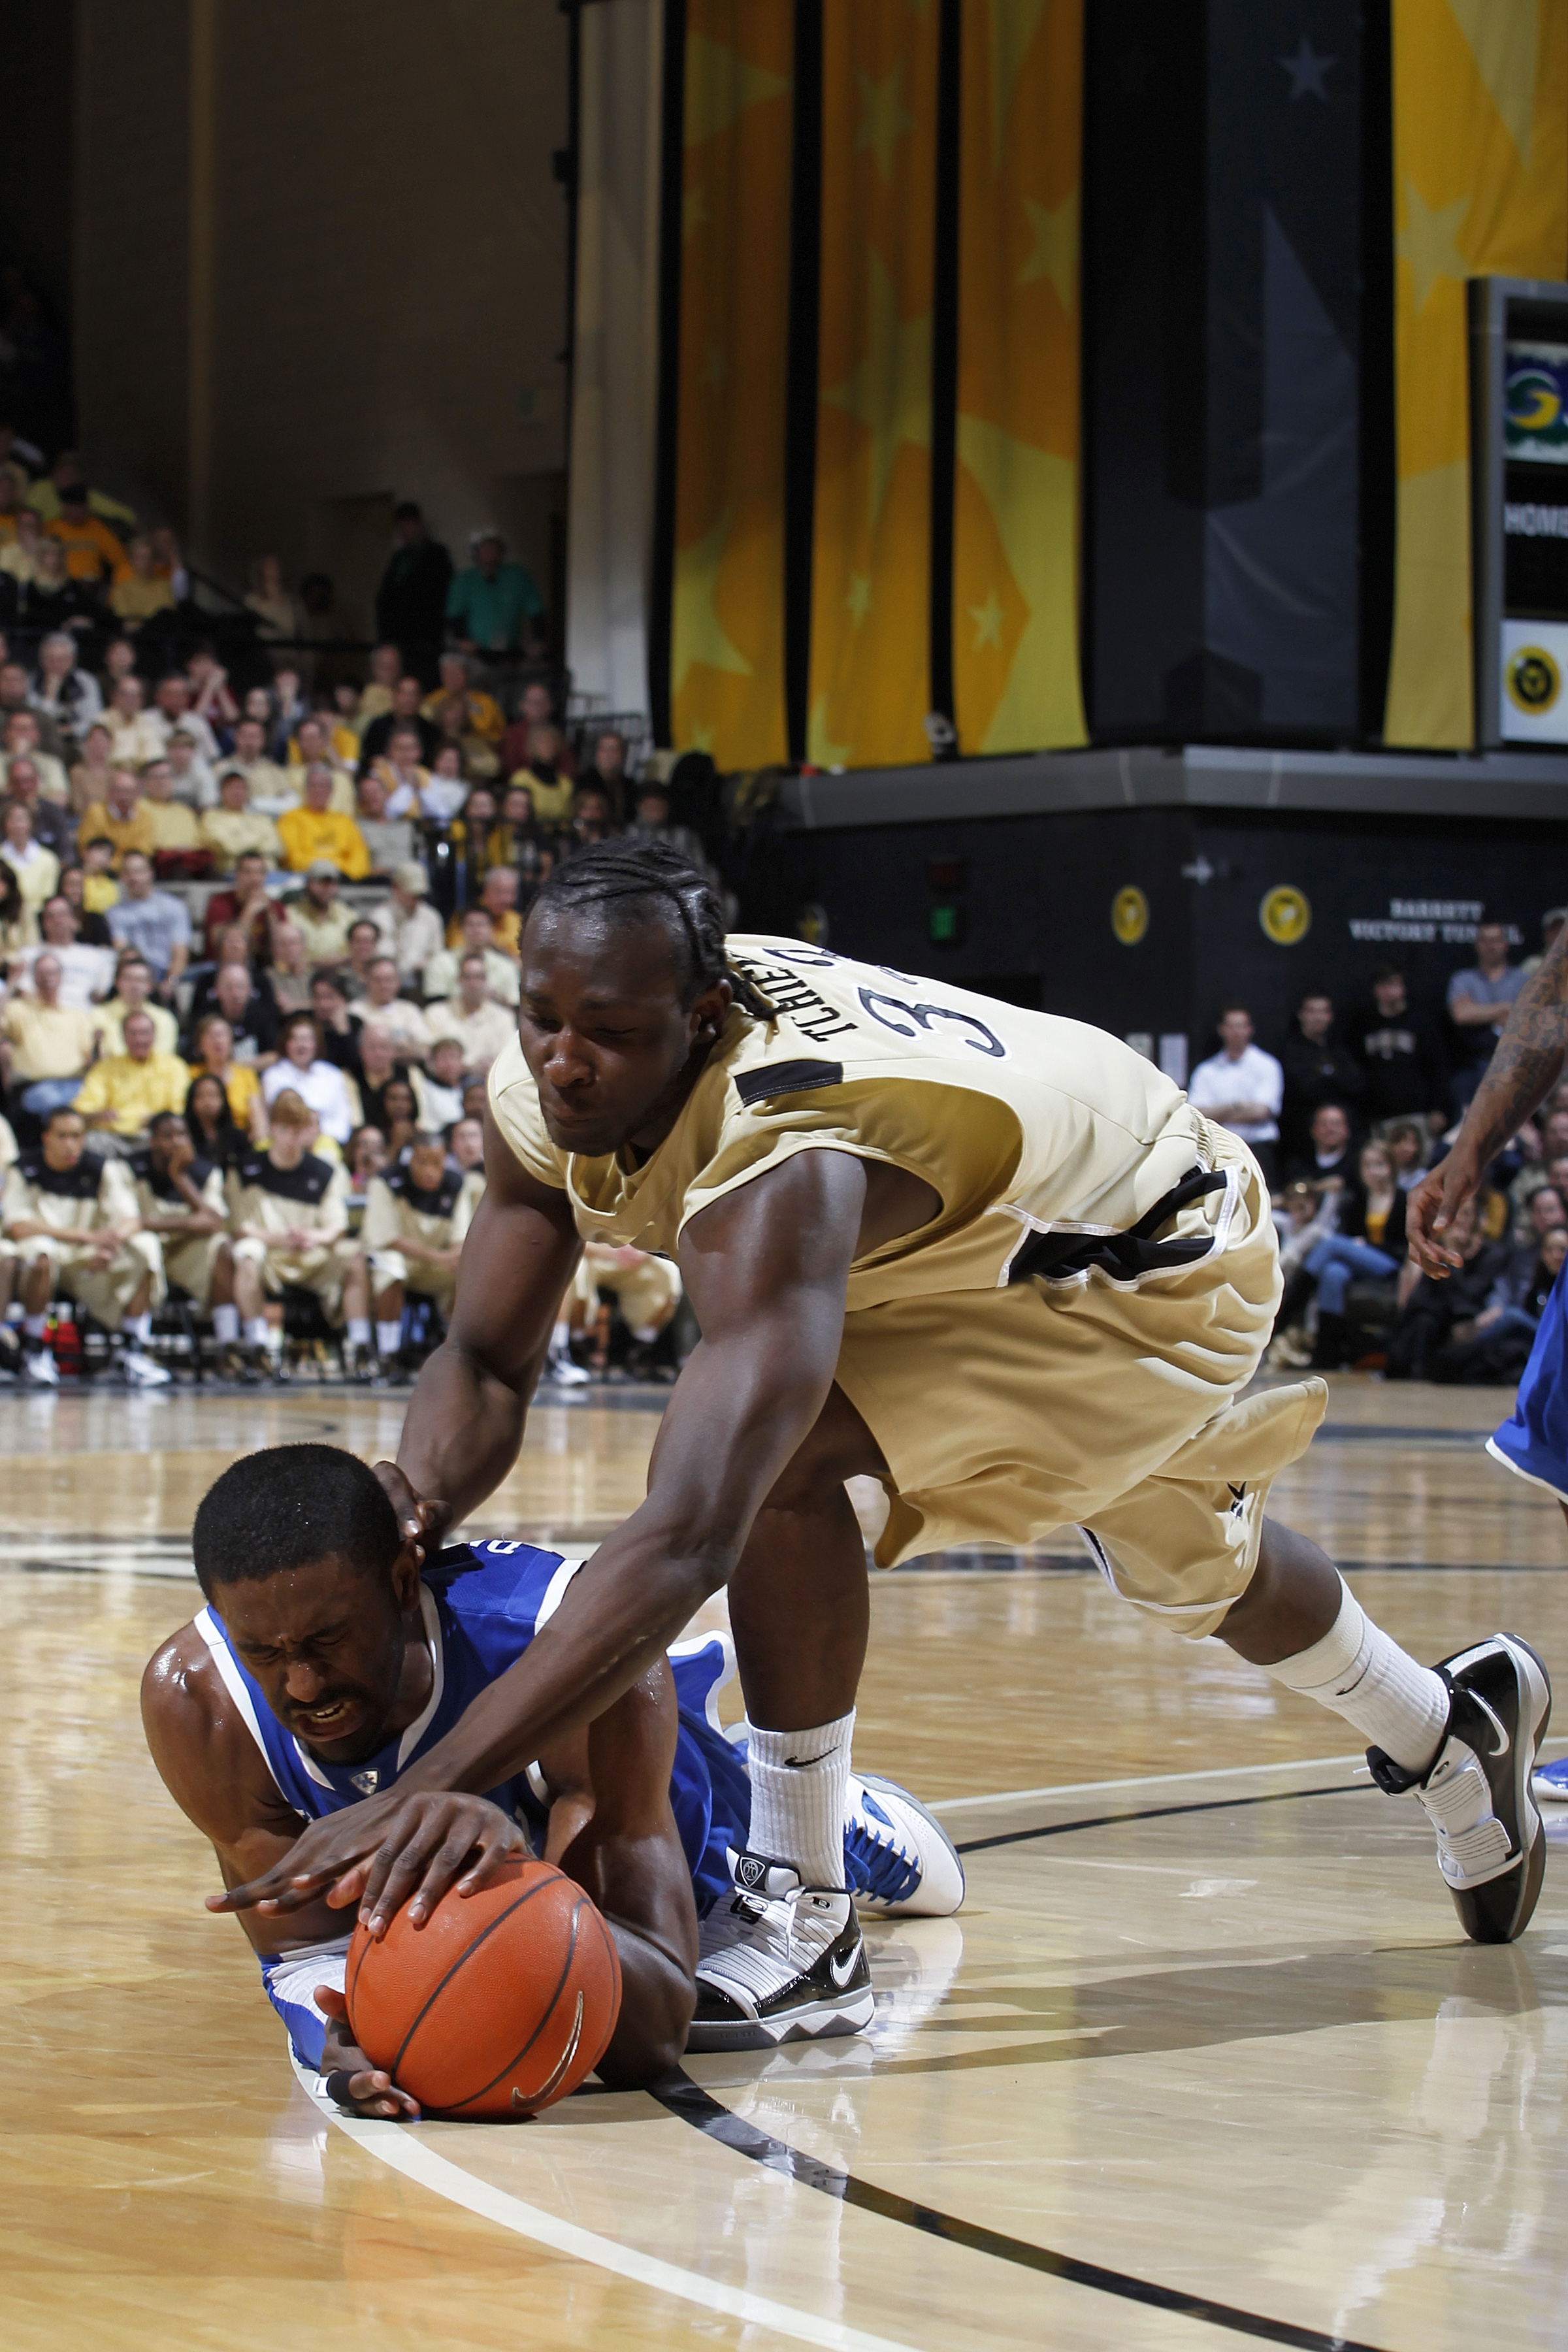 NASHVILLE, TN - FEBRUARY 20: Patrick Patterson #54 of the Kentucky Wildcats dives for a loose ball against Steve Tchiengang #33 of the Vanderbilt Commodores at Memorial Gymnasium on February 20, 2010 in Nashville, Tennessee. Kentucky defeated Vanderbilt 5